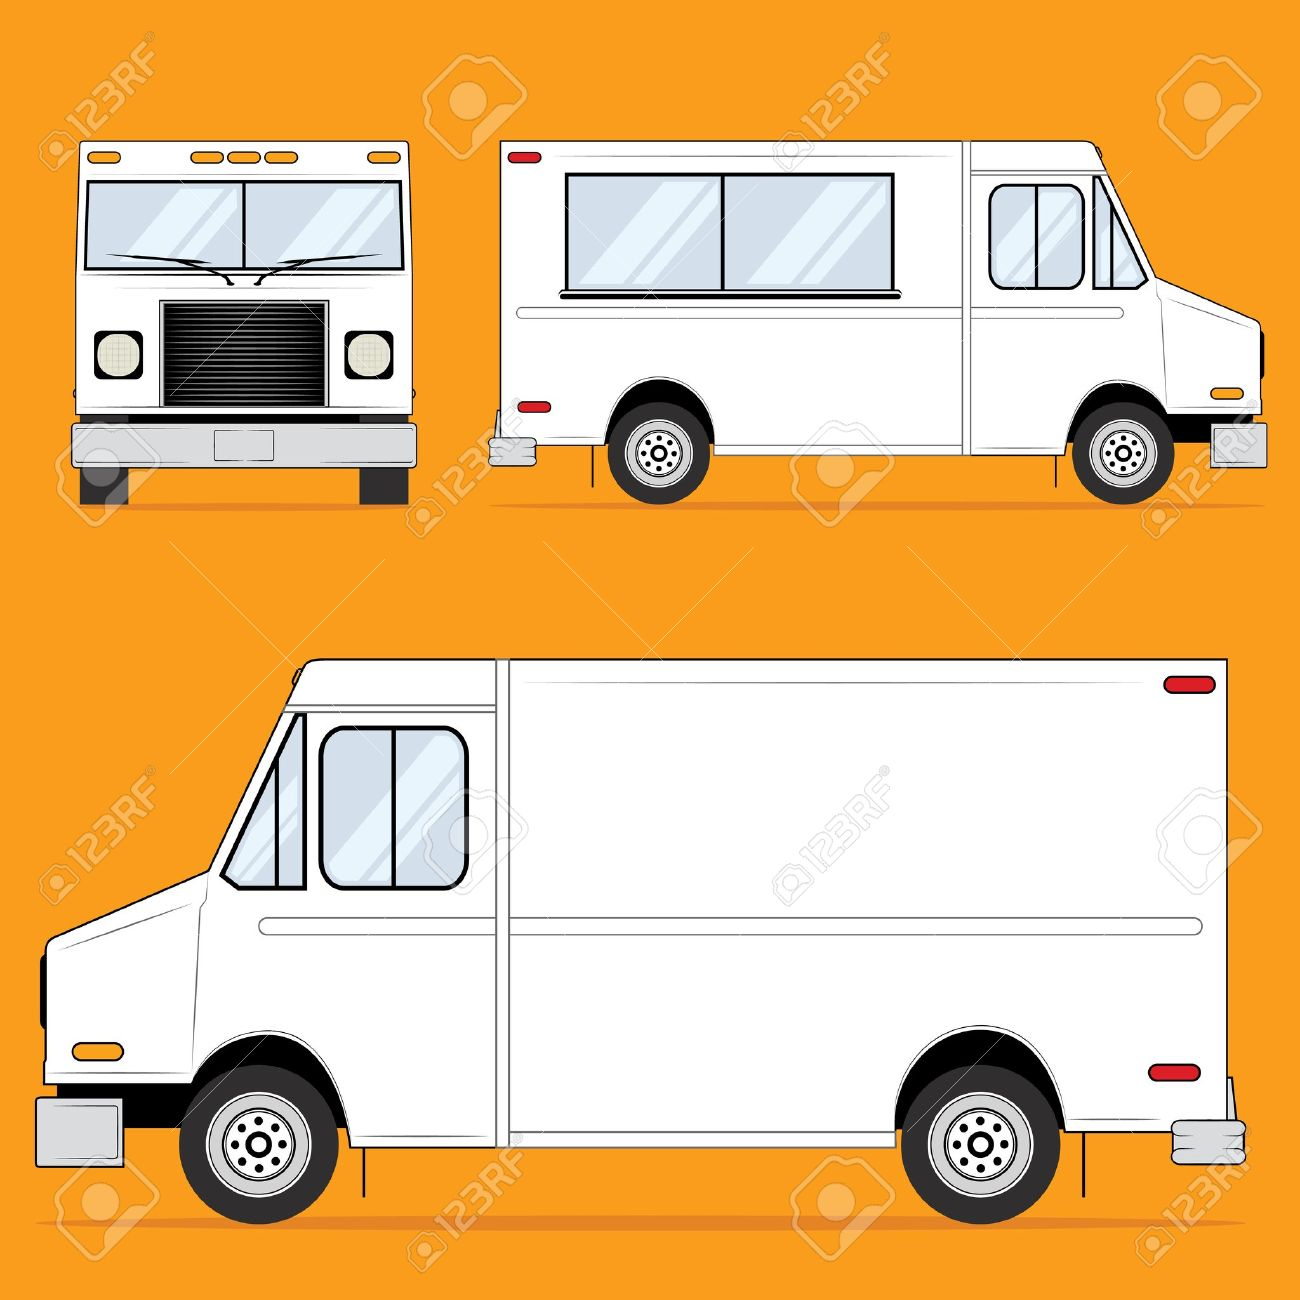 Food Truck Blank Stock Vector